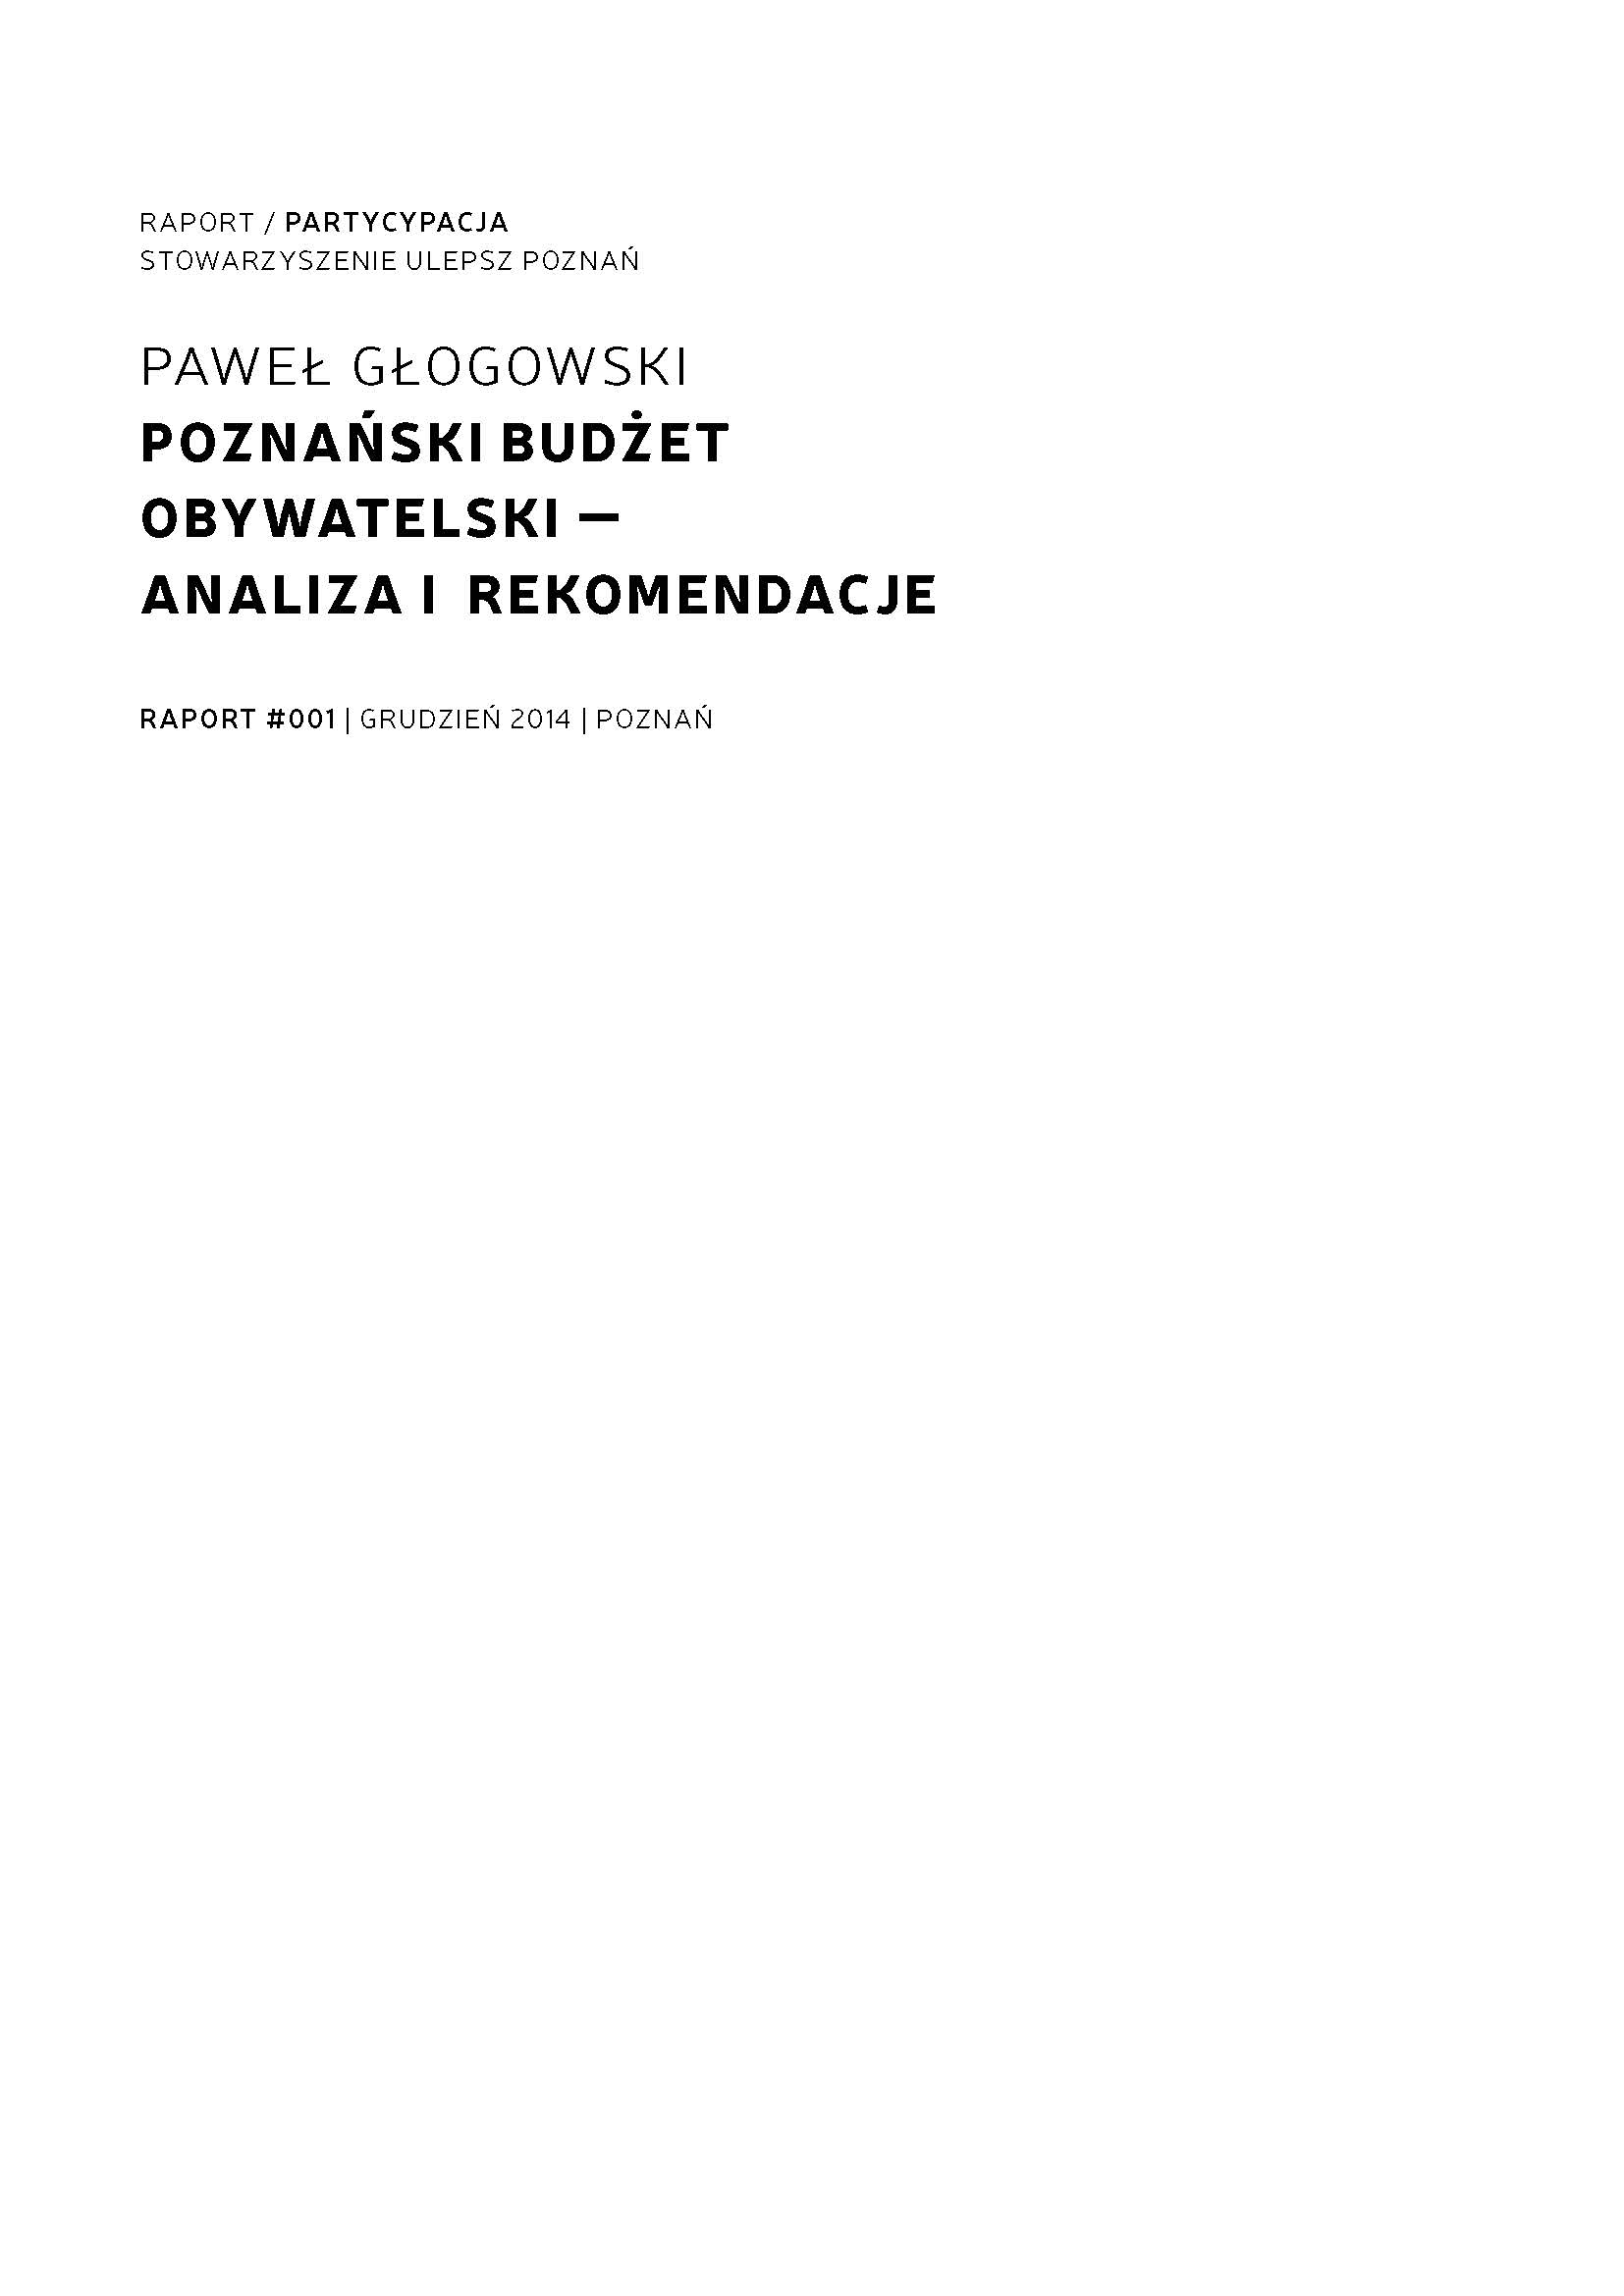 Poznan Participatory Budget - Analysis and Recommendations Cover Image